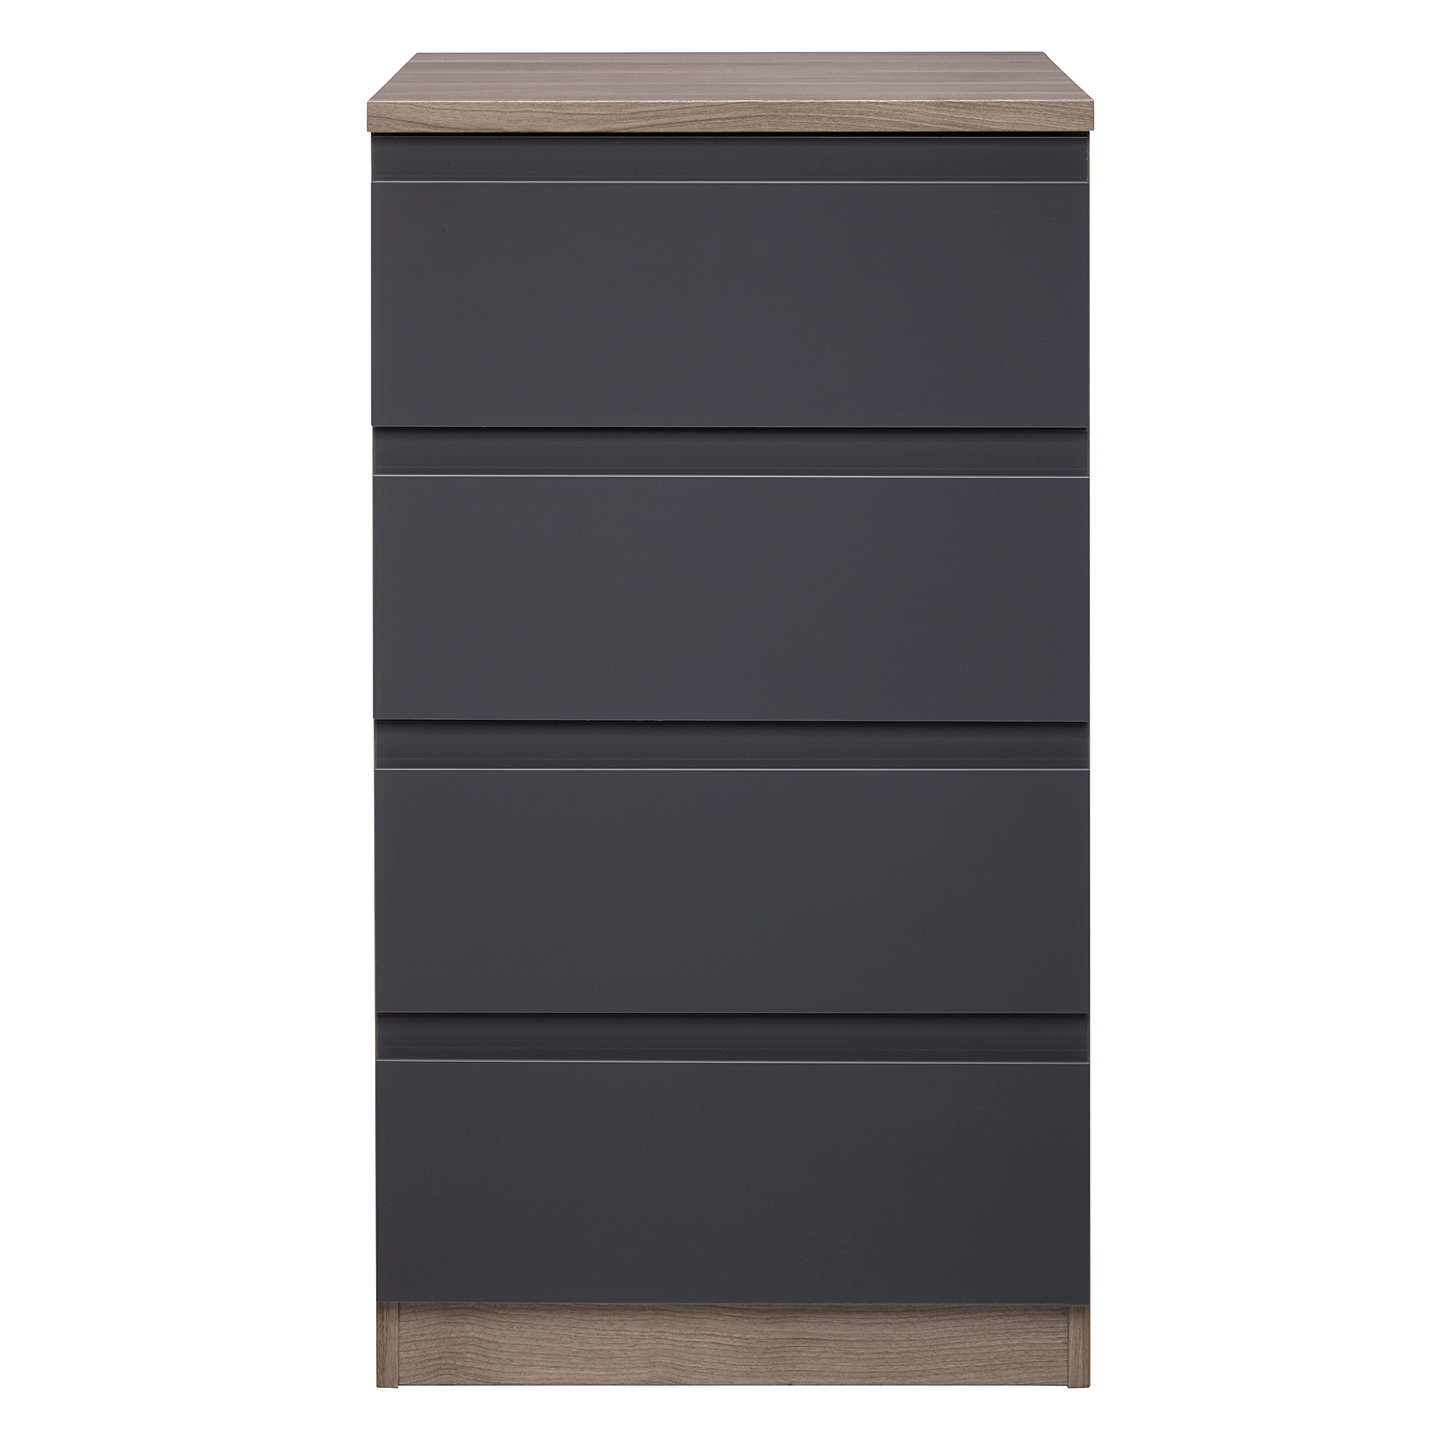 BuyHouse by John Lewis Mix it Narrow 4 Drawer Chest, Gloss House Steel/Grey Ash Online at johnlewis.com